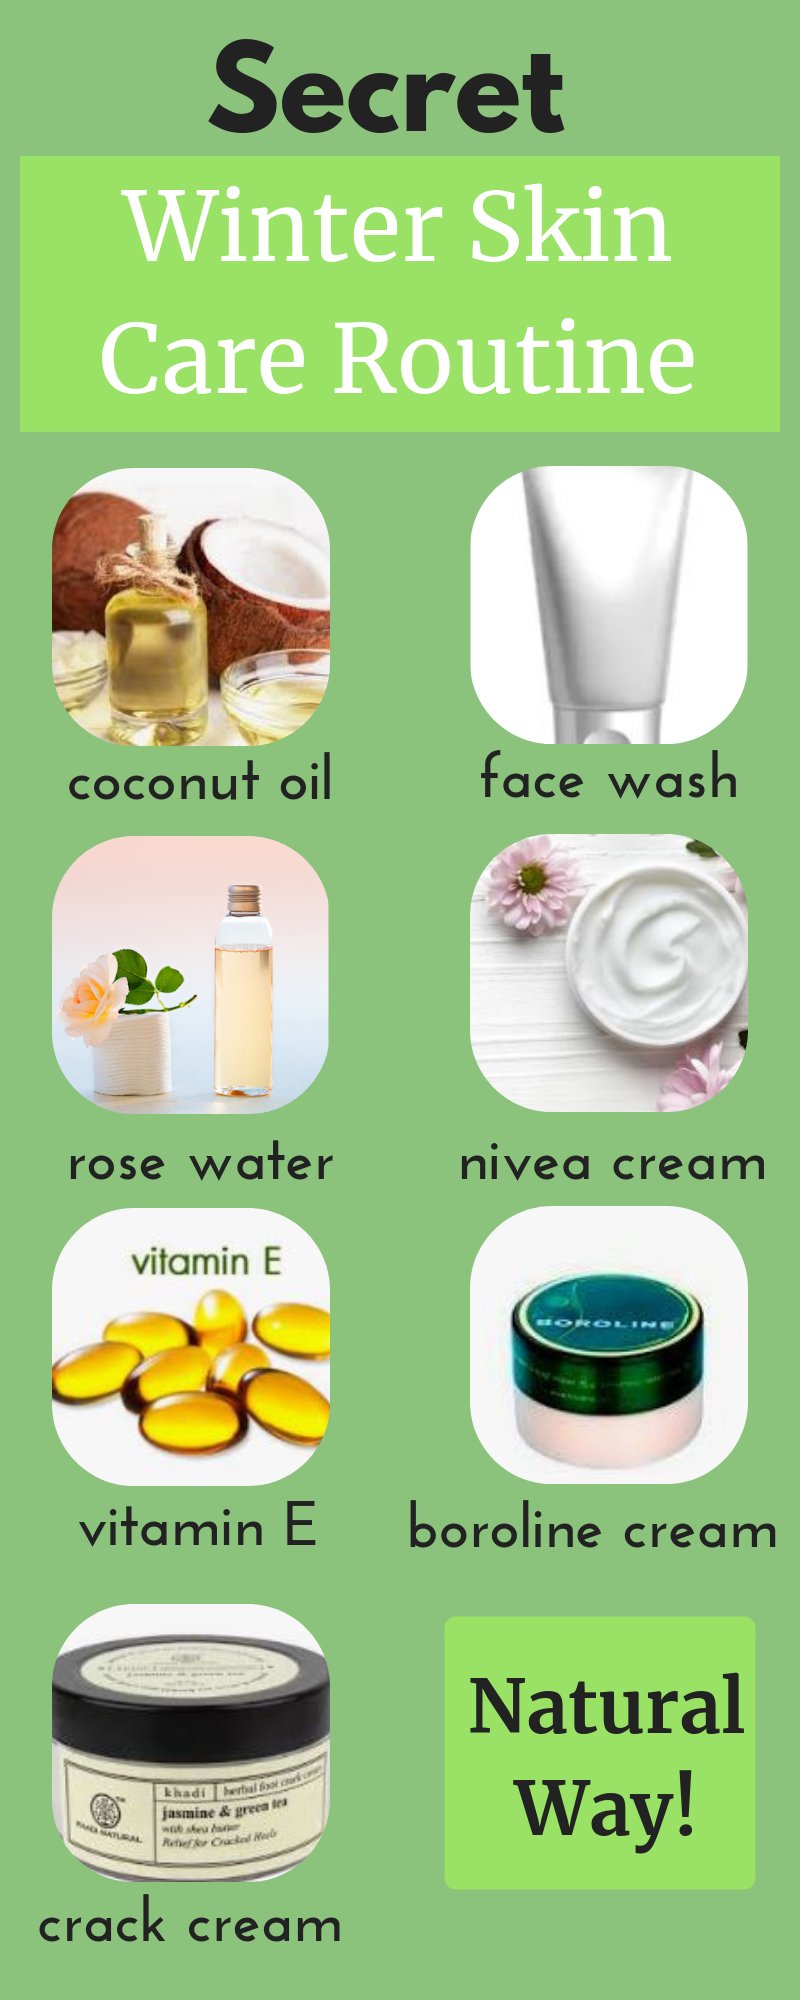 Skin Care Expert Revealed Secret Winter Skin Care Routine At Home Naturally Skincare Skincareroutine S Winter Skin Care Routine Winter Skin Care Winter Skin